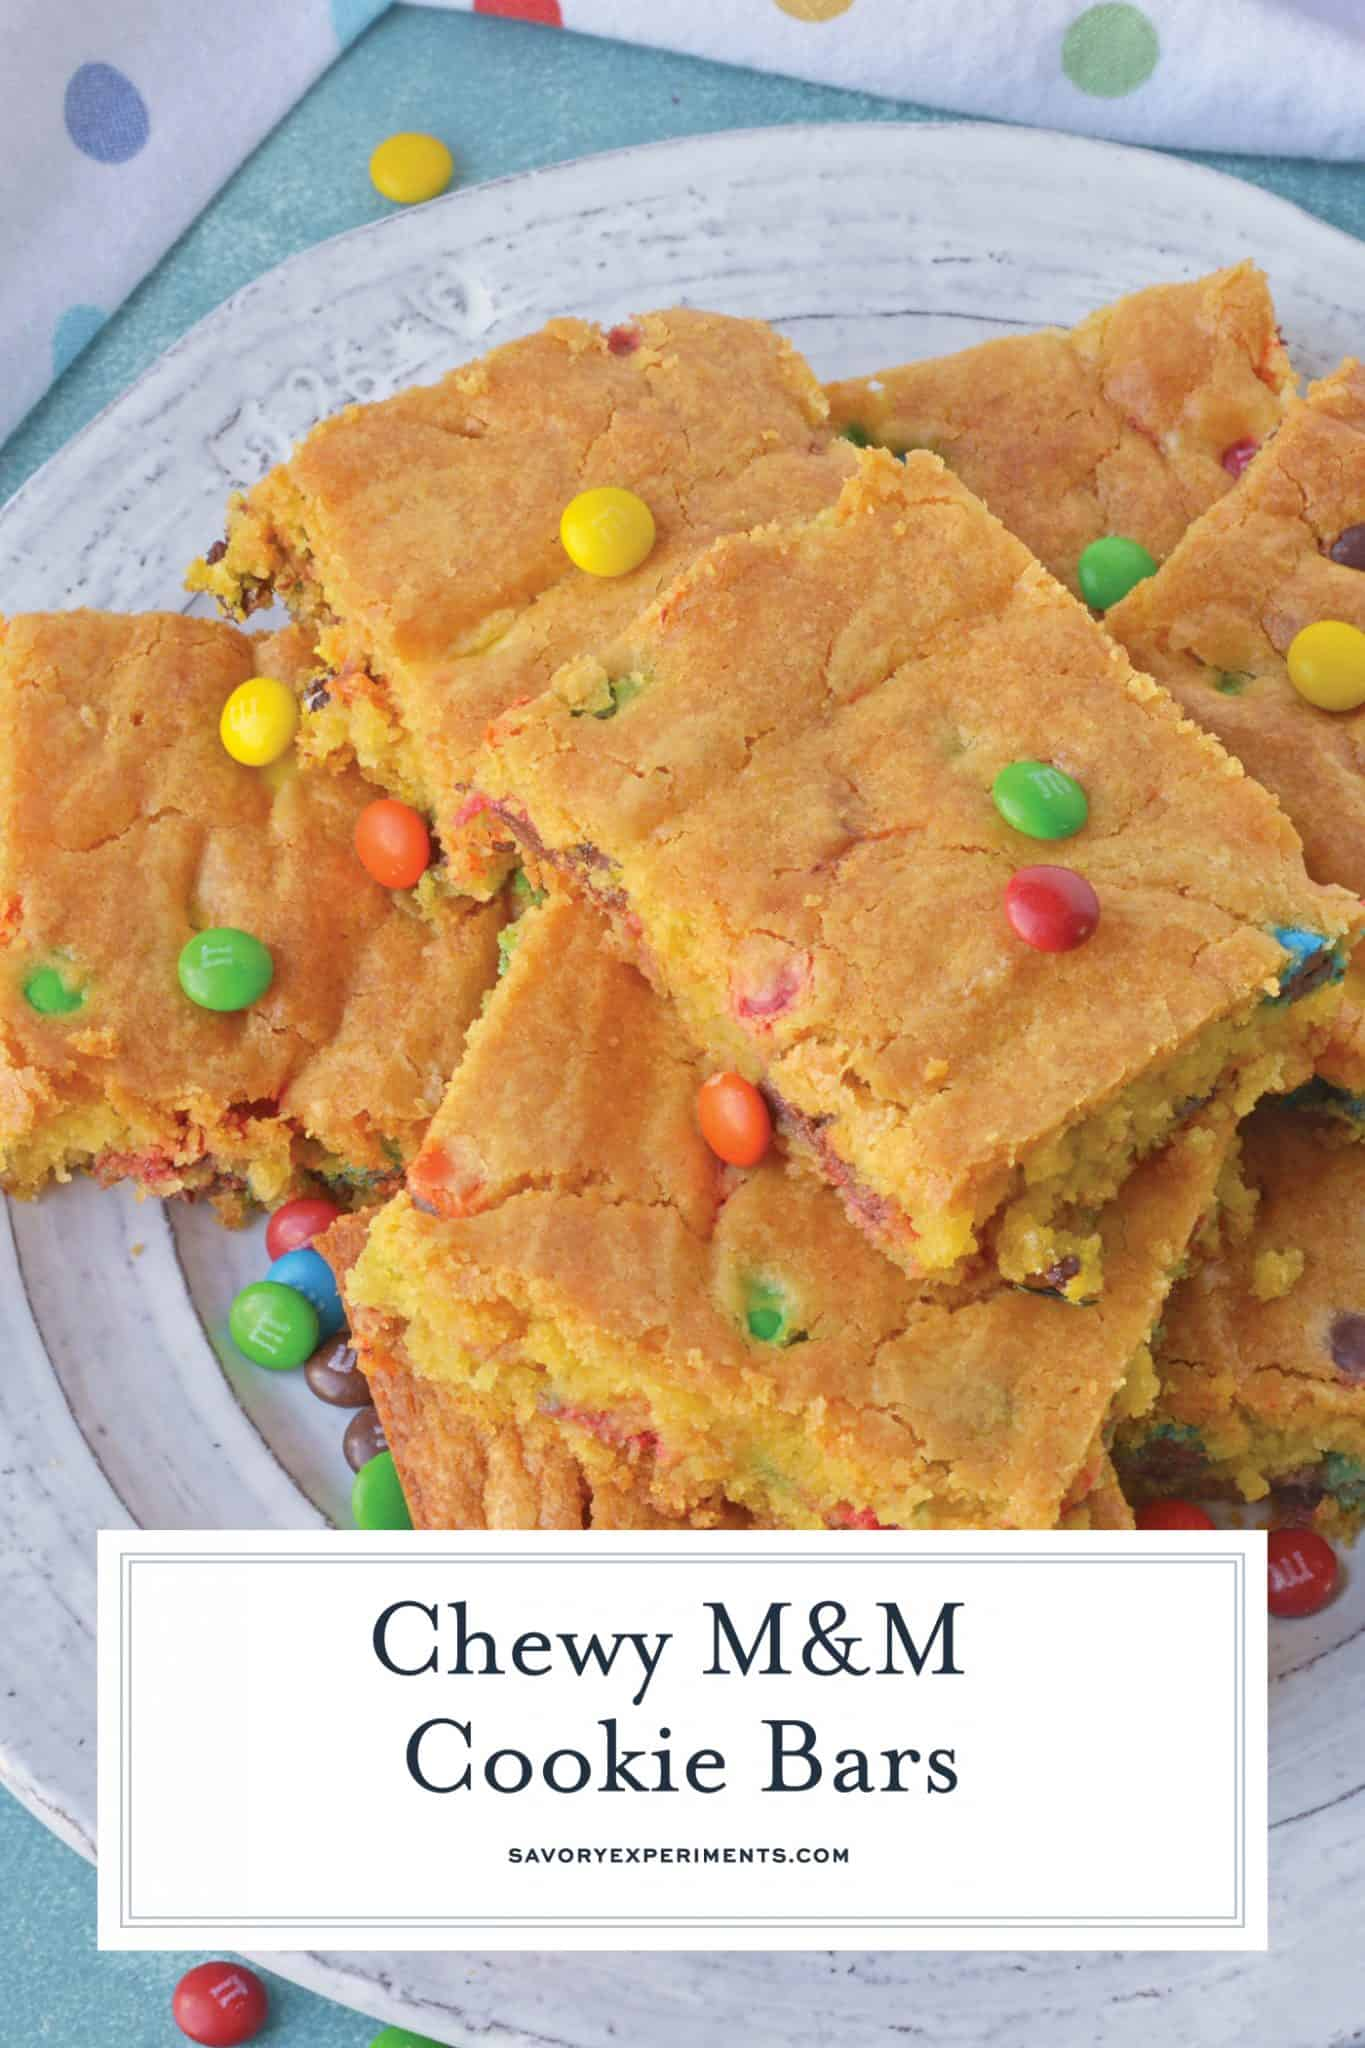 Thick and chewy M&M Cookie Bars are perfect for your cookie exchange, dessert potluck or an after school snack using just a few ingredients! #cookiebars #easydessertrecipes www.savoryexperiments.com